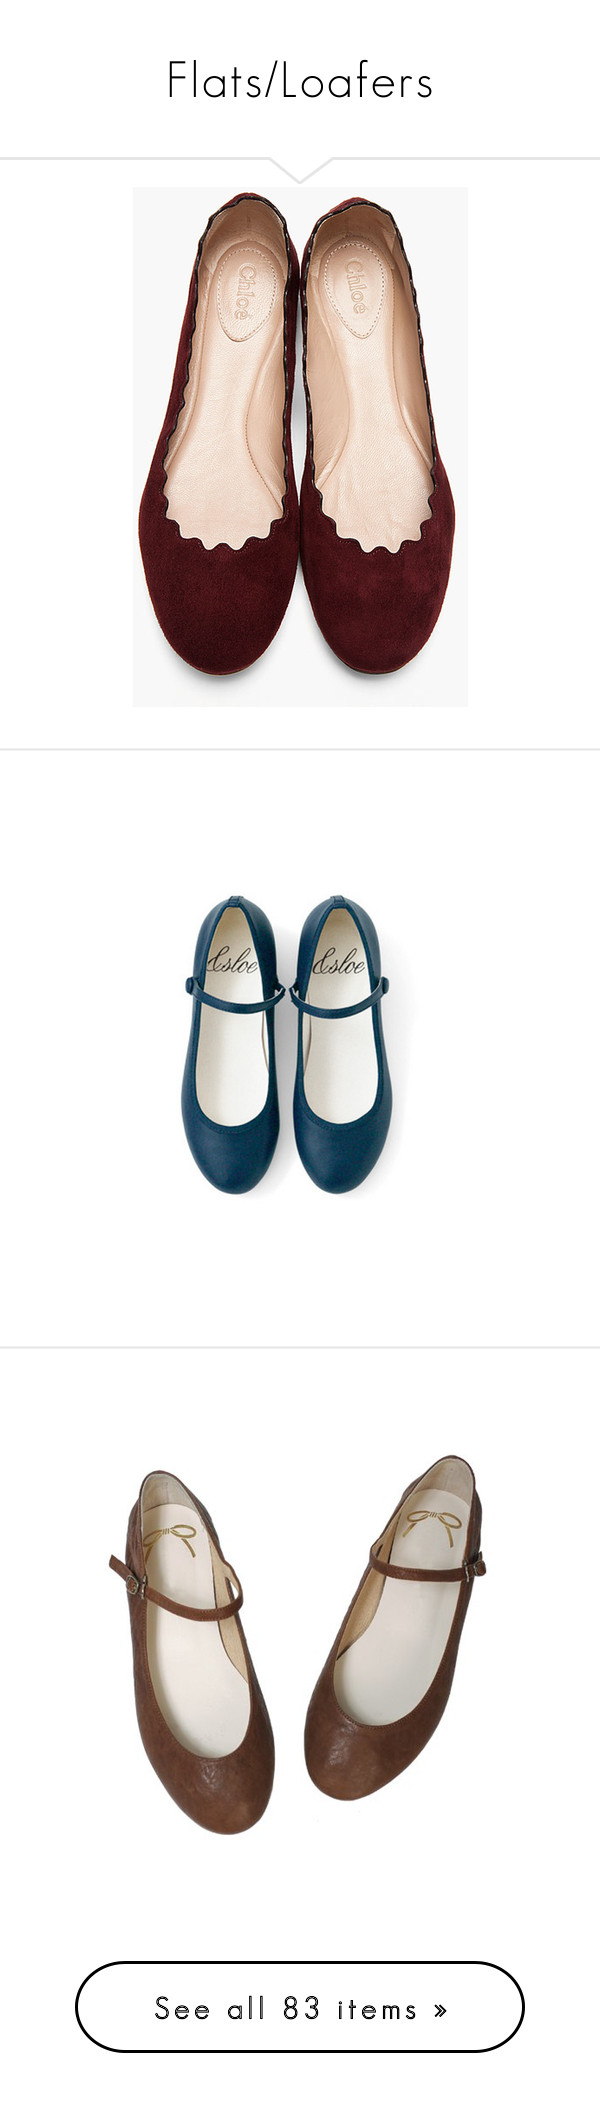 """""""Flats/Loafers"""" by lilies-for-lily ❤ liked on Polyvore featuring shoes, flats, sapatos, zapatos, purple suede shoes, flat shoes, plum shoes, plum flats, round toe shoes and обувь"""